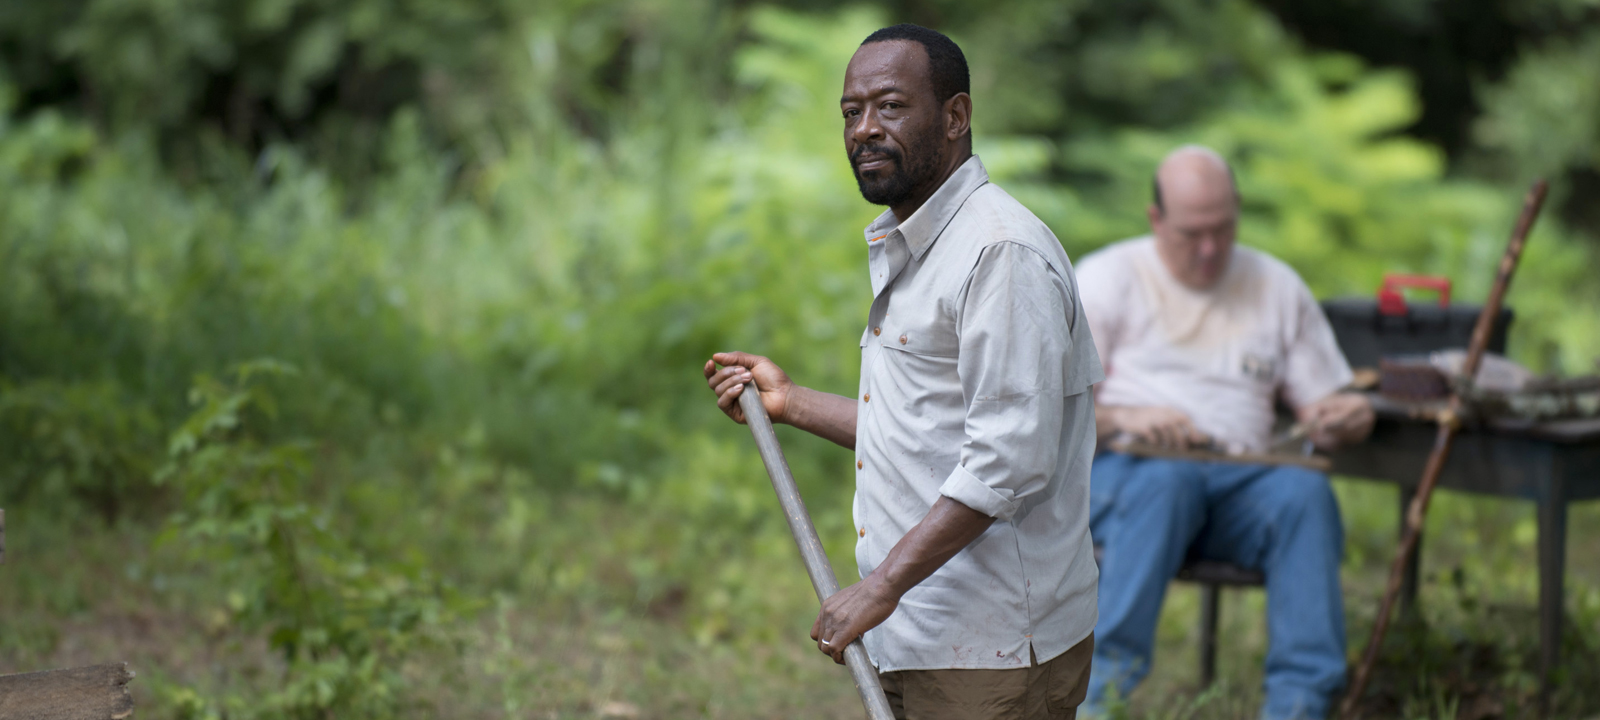 the-walking-dead-episode-604-morgan-james-interview-800×600